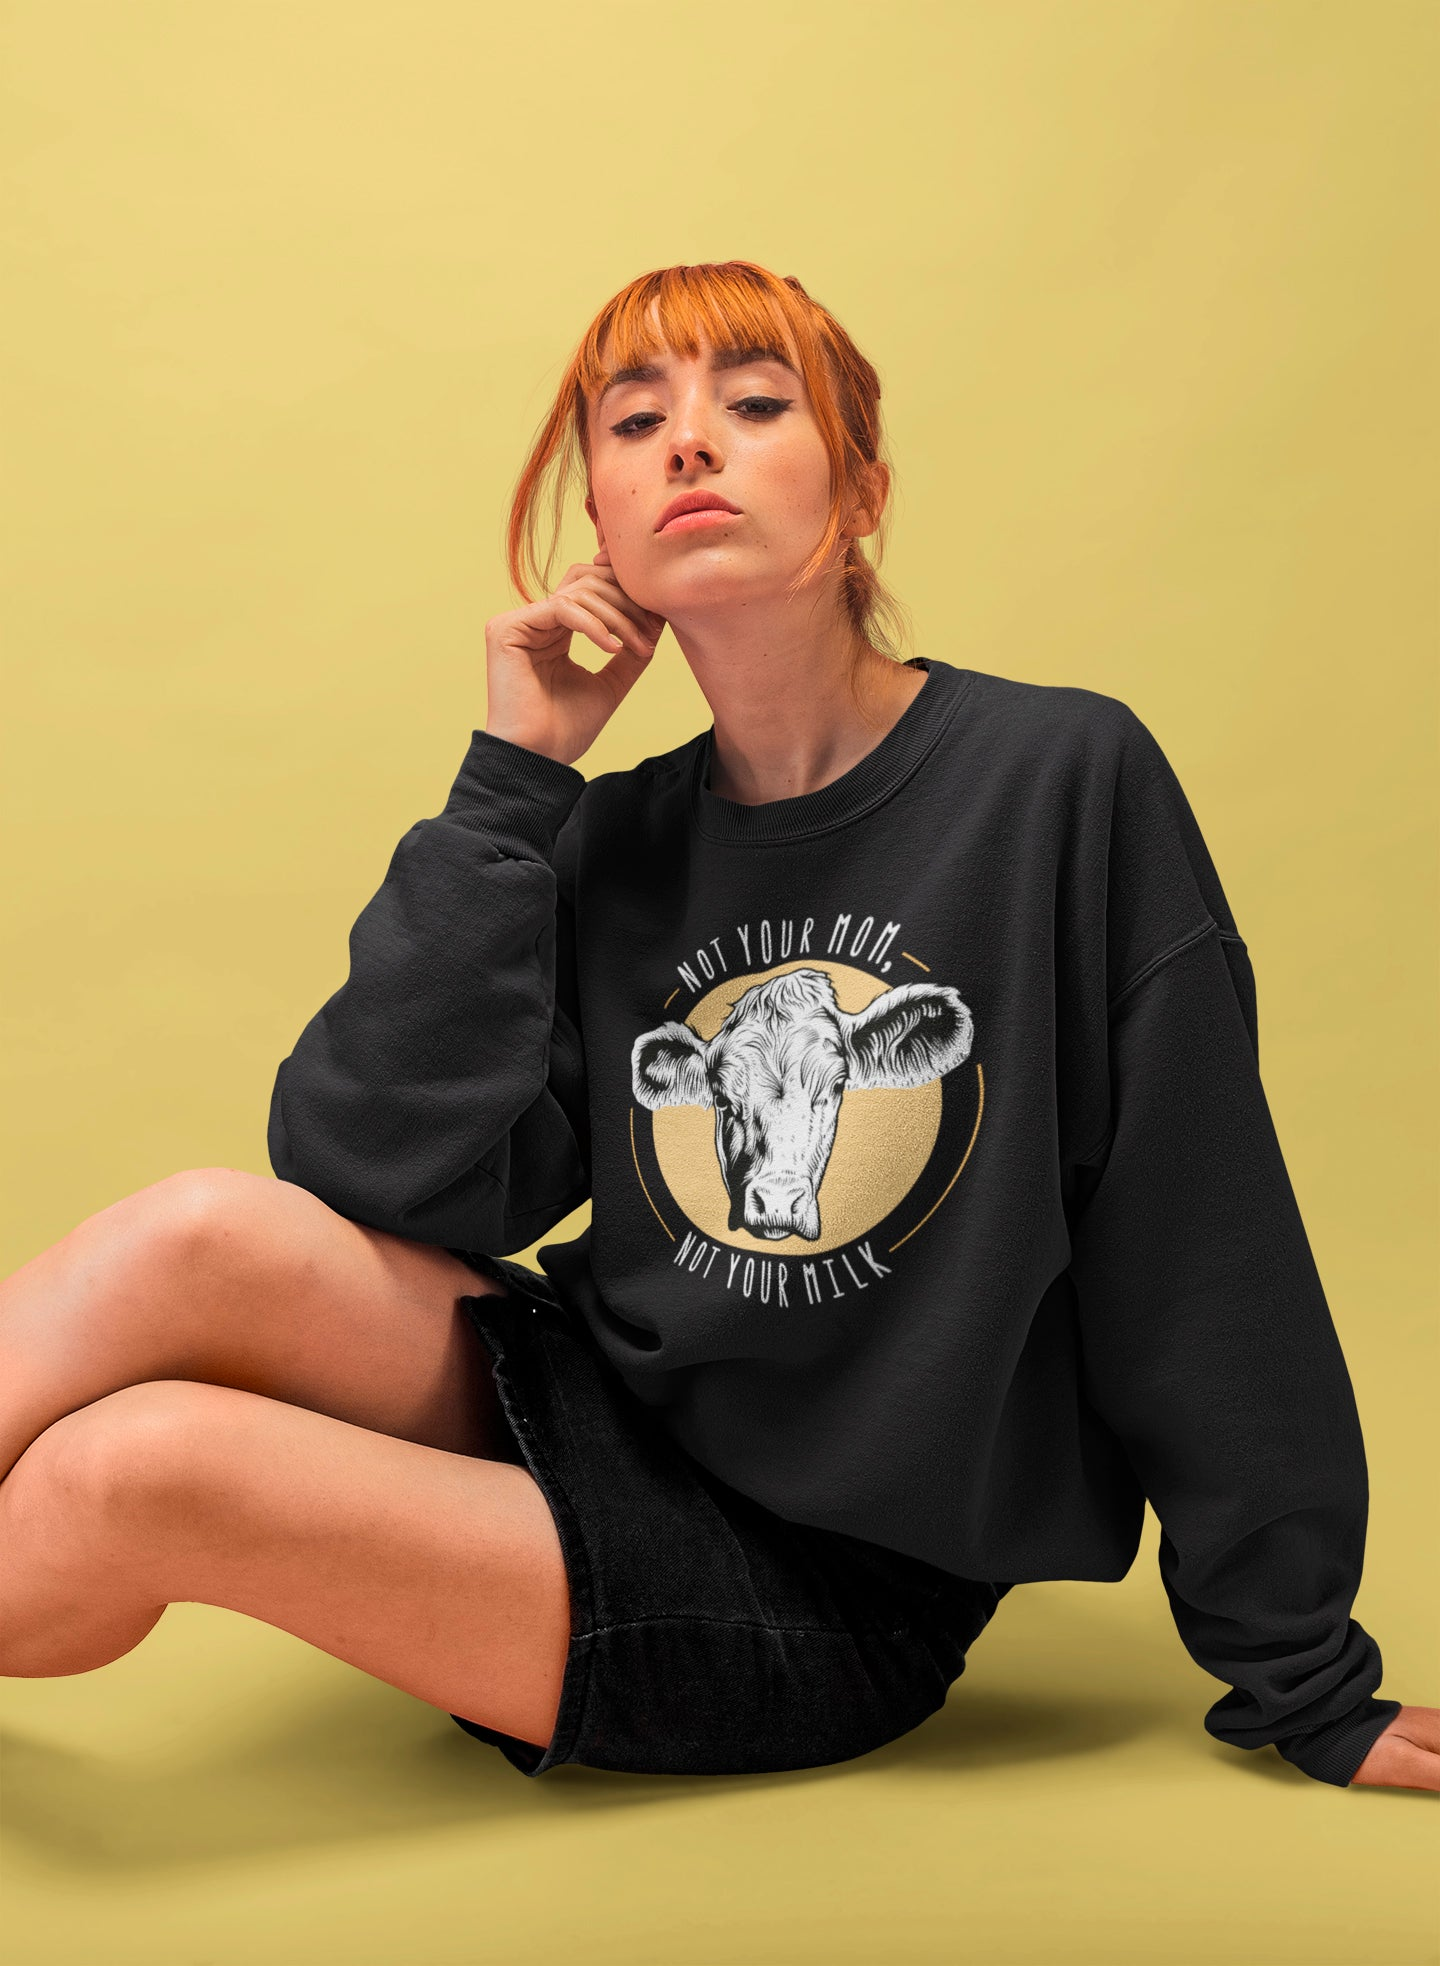 Not your mom, not your milk - Vegan sweatshirt